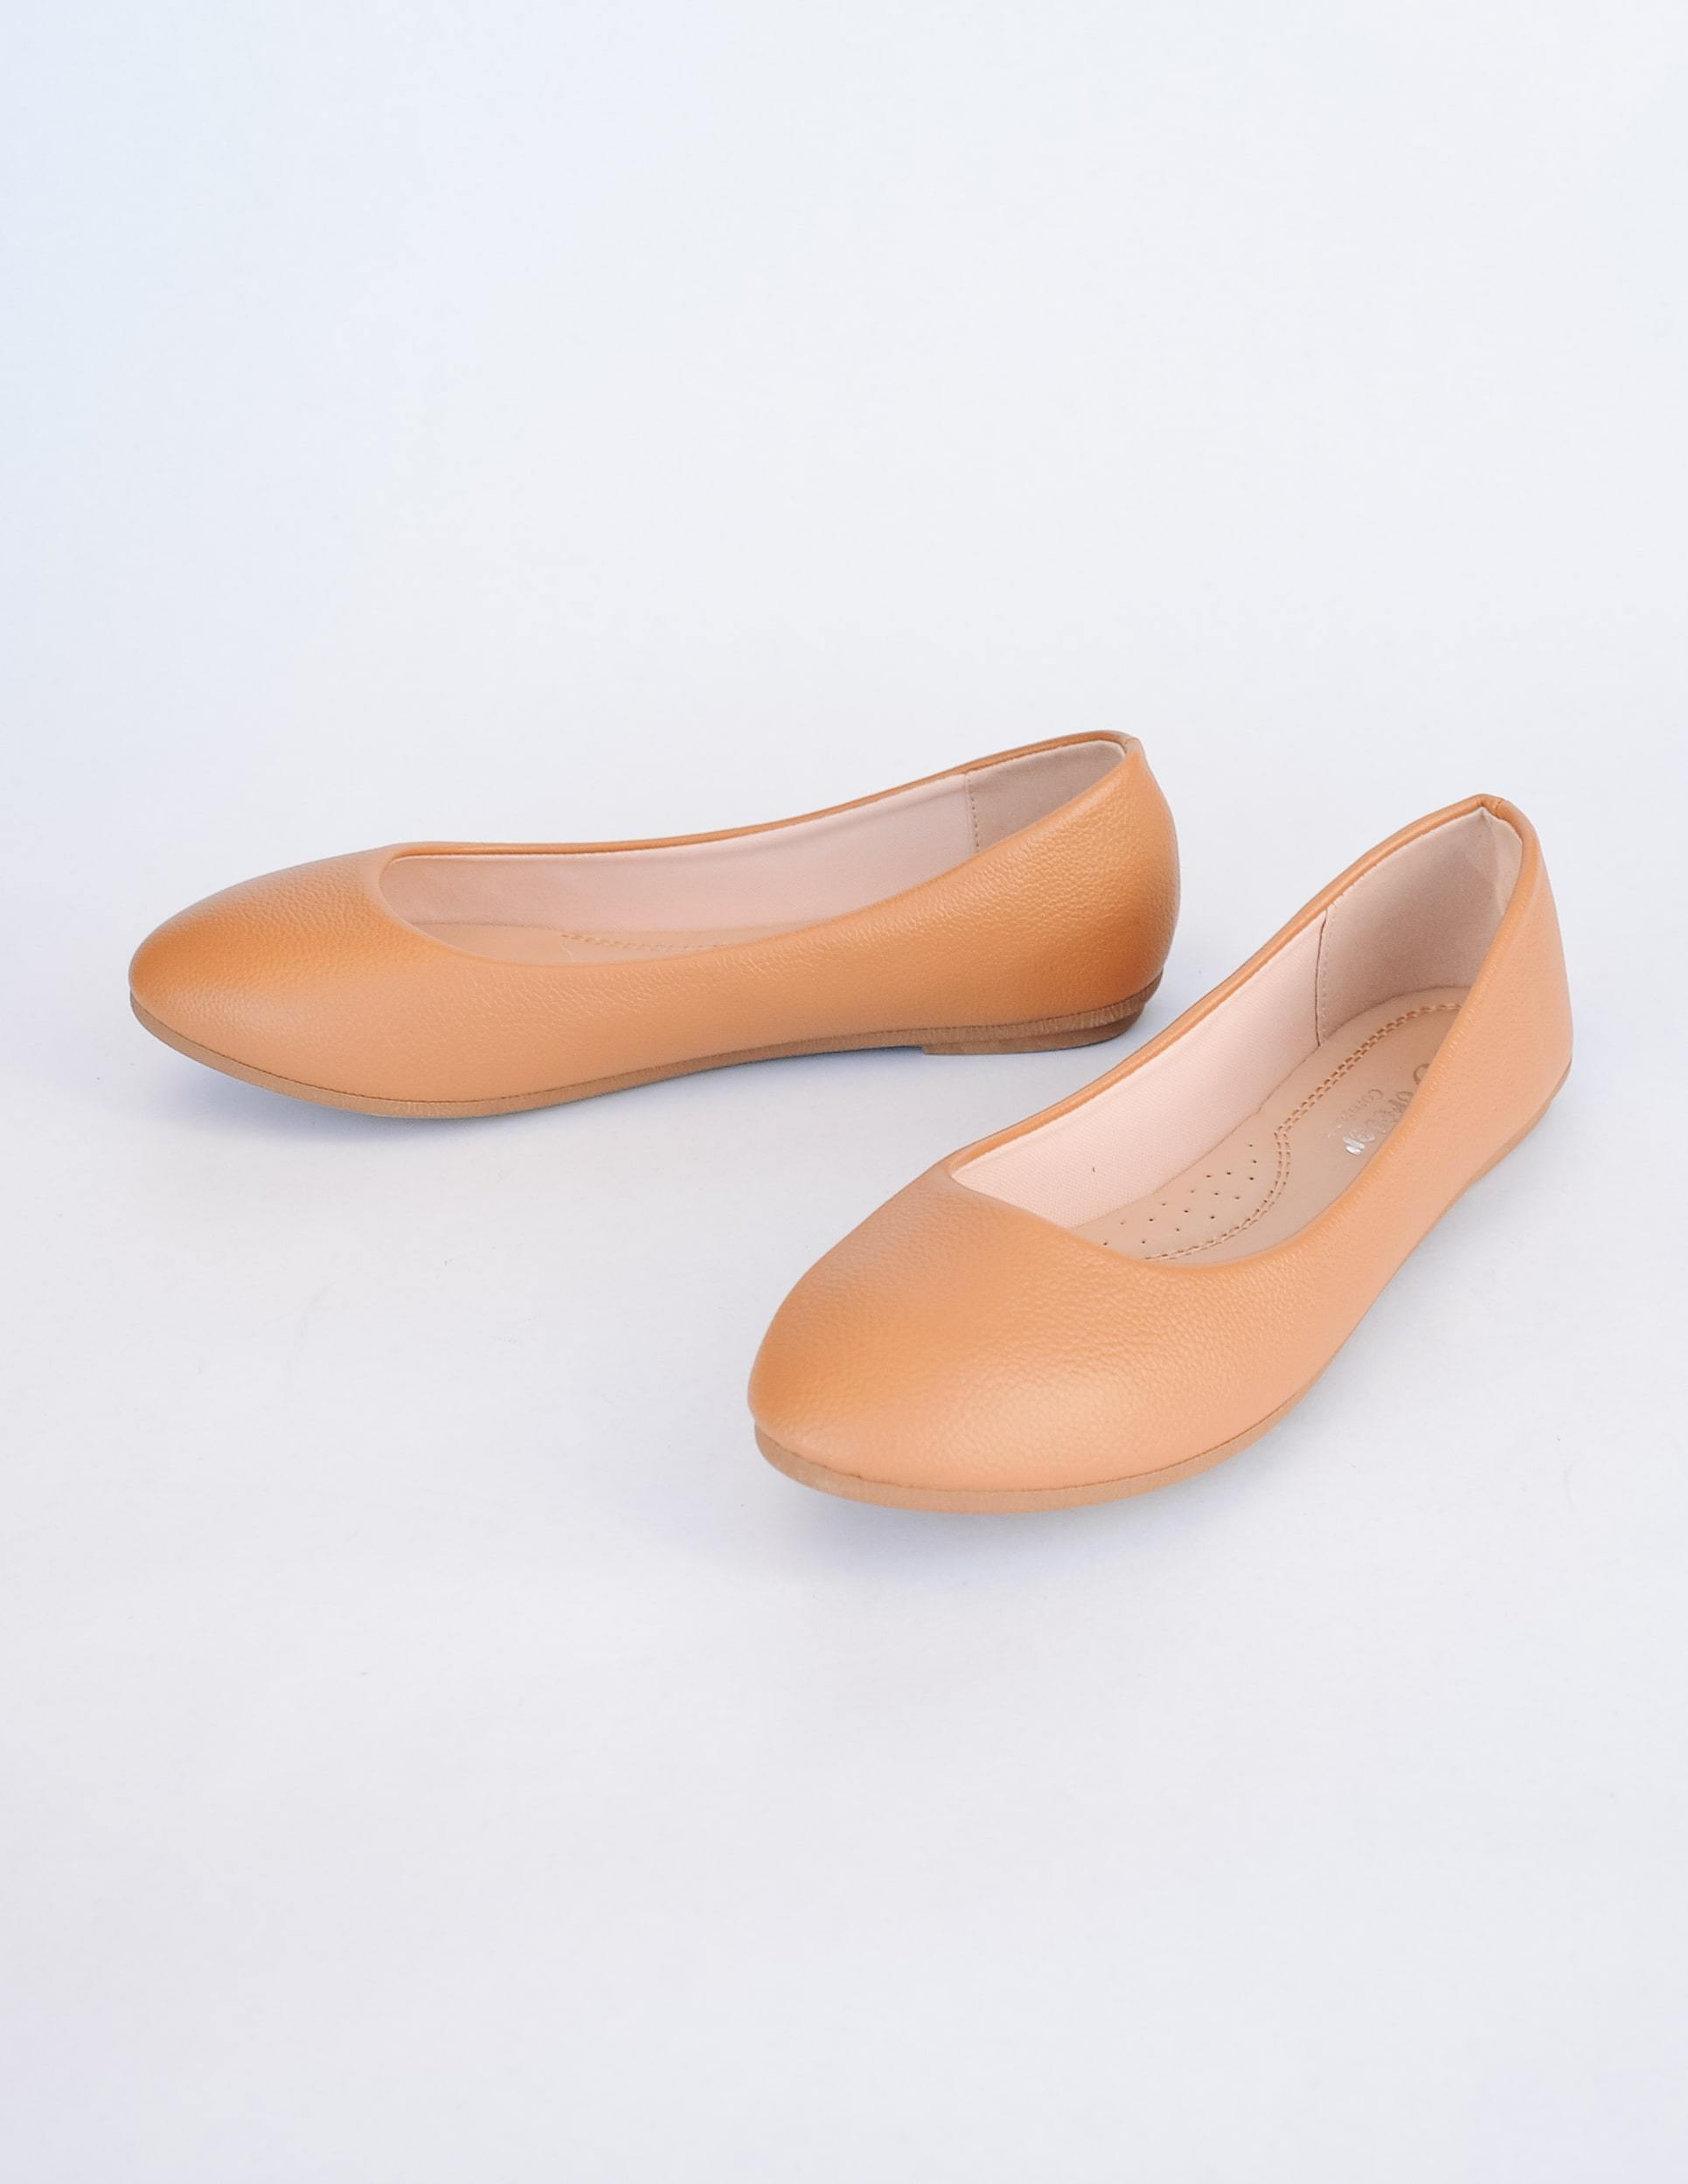 Tan round toe vegan pebble leather flat with light tan insole